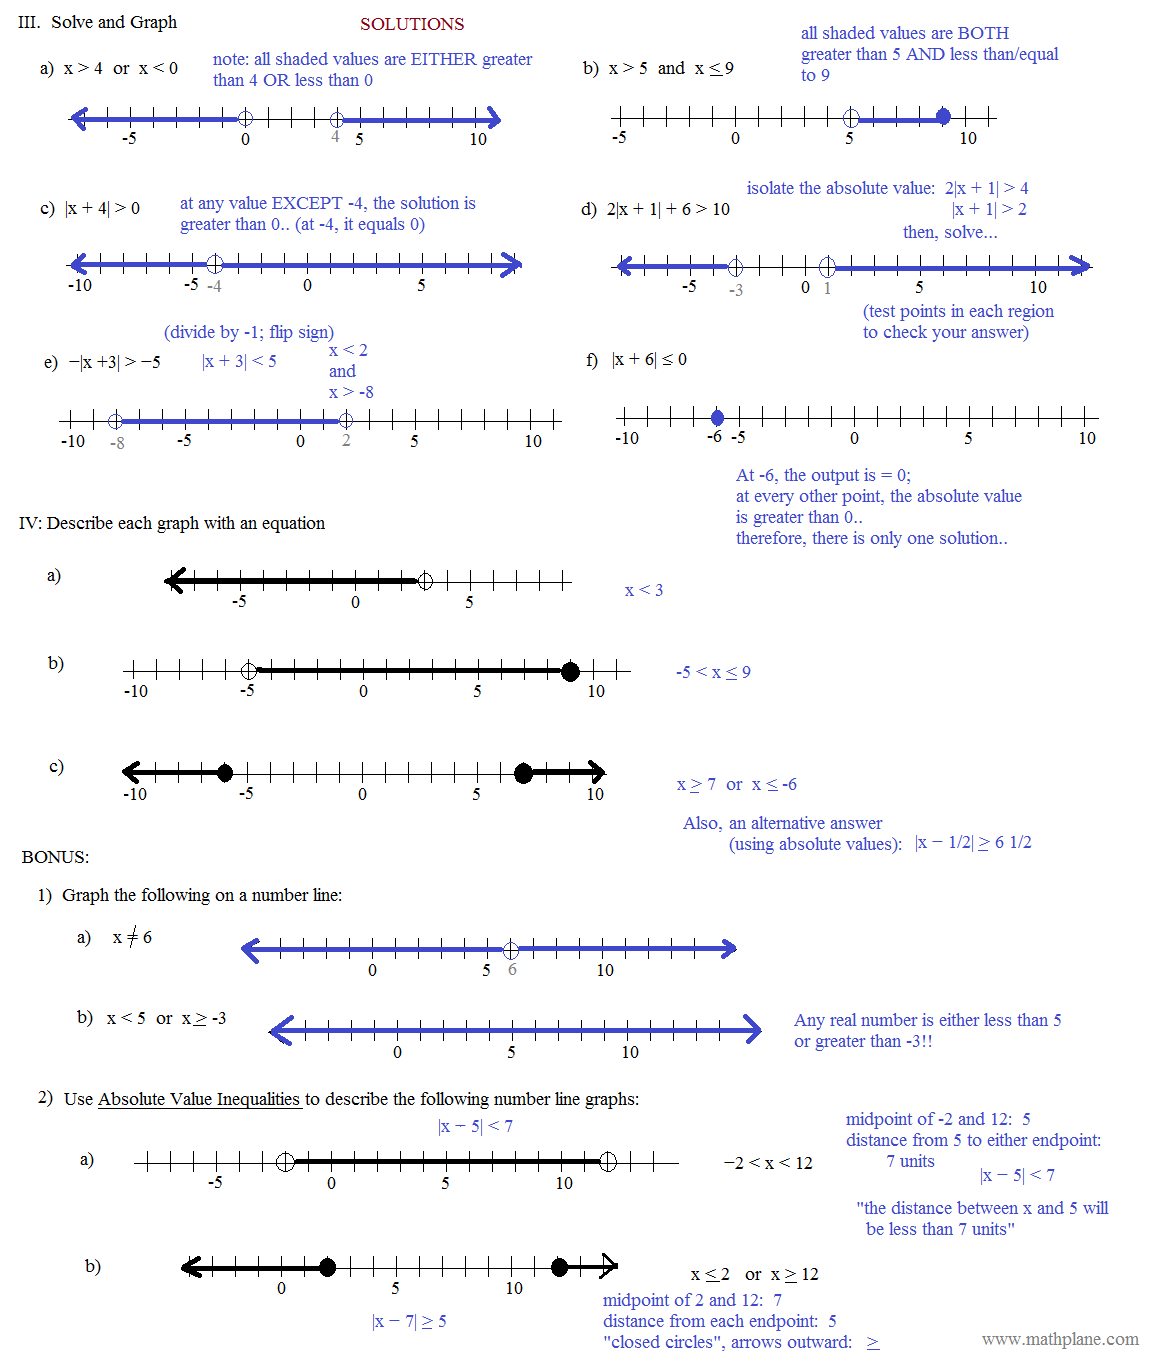 Worksheet Absolute Value Inequalities Worksheet math plane absolute value and inequalities quiz values number line 2 solutions